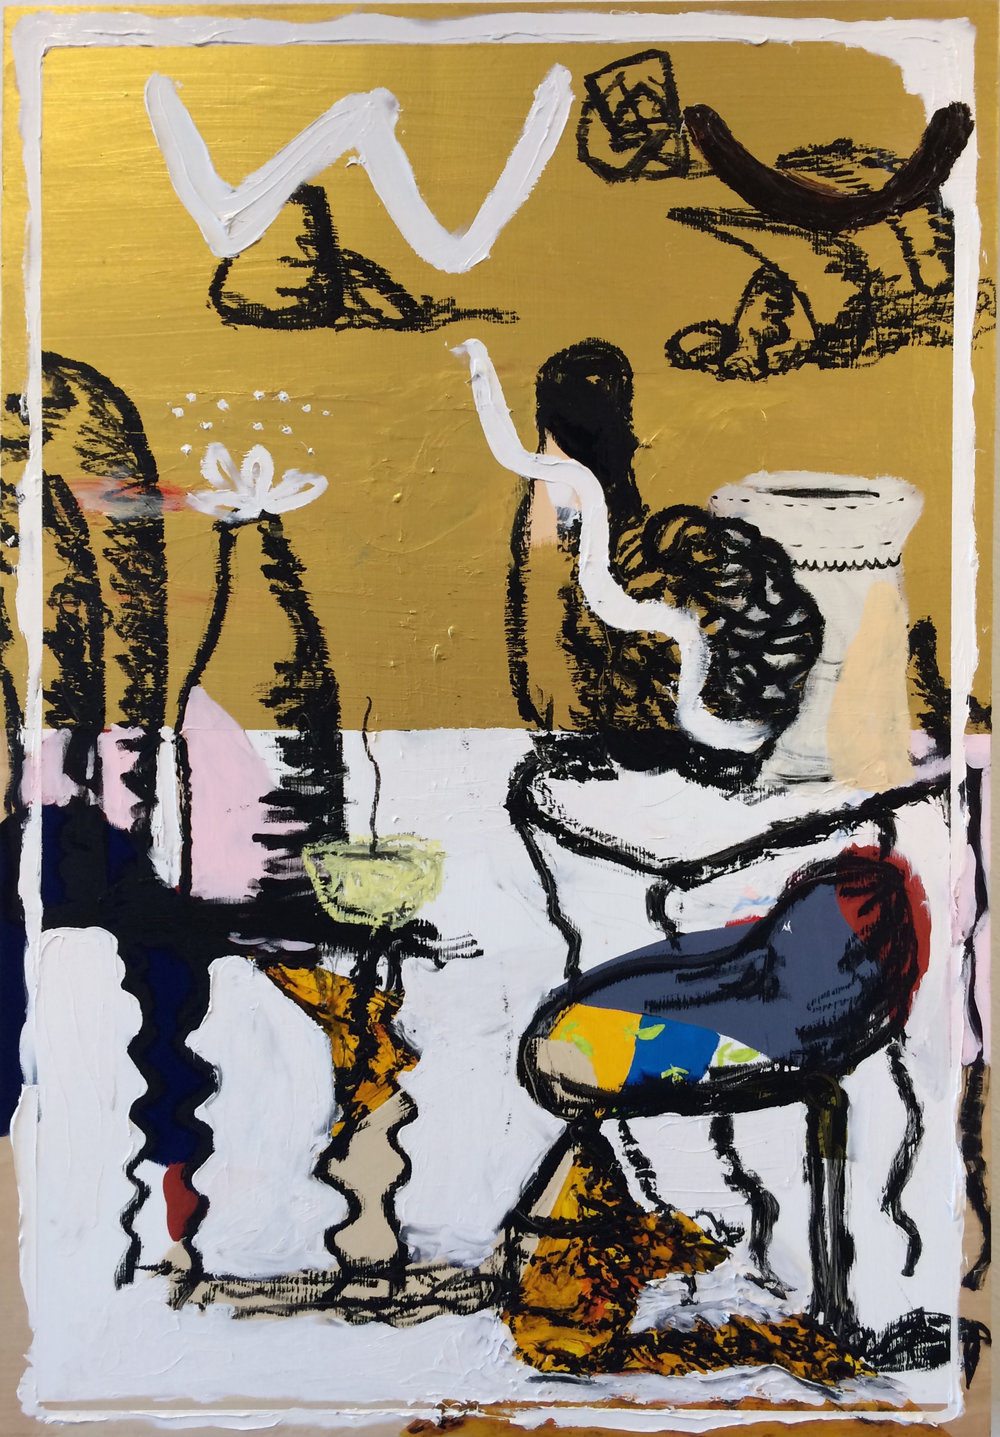 Baby Swing, Tables, Bottle, JK Ceramics // 2017 // Acrylic, paint stick, and pencil on wood panel // 44 x 30 inches